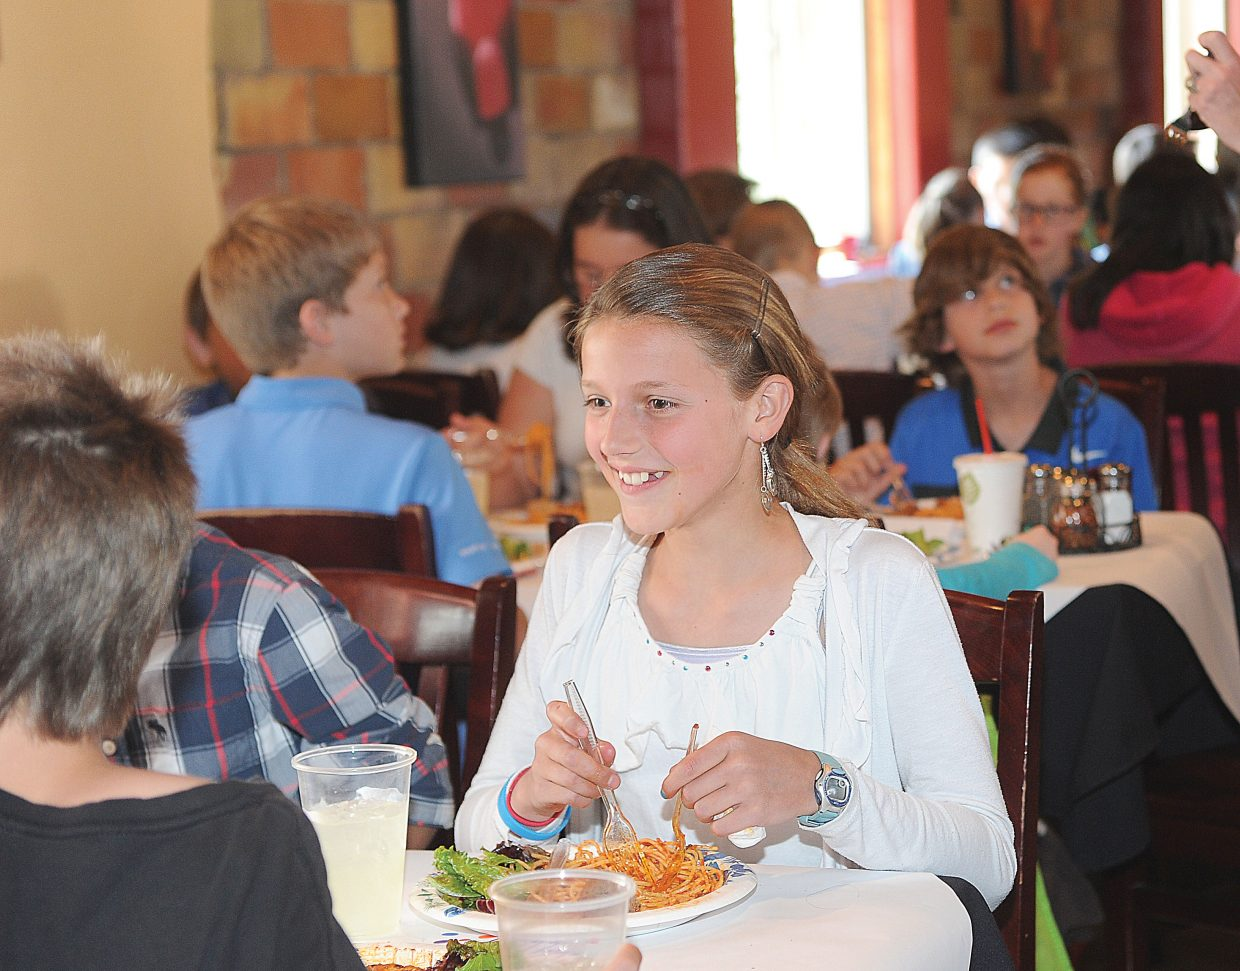 Fifth-grader Riley Hodges takes part in Soda Creek Elementary School's formal luncheon at Mambo Italiano on Friday. The luncheon is the culmination of etiquette lessons taught by Molly Hayes.